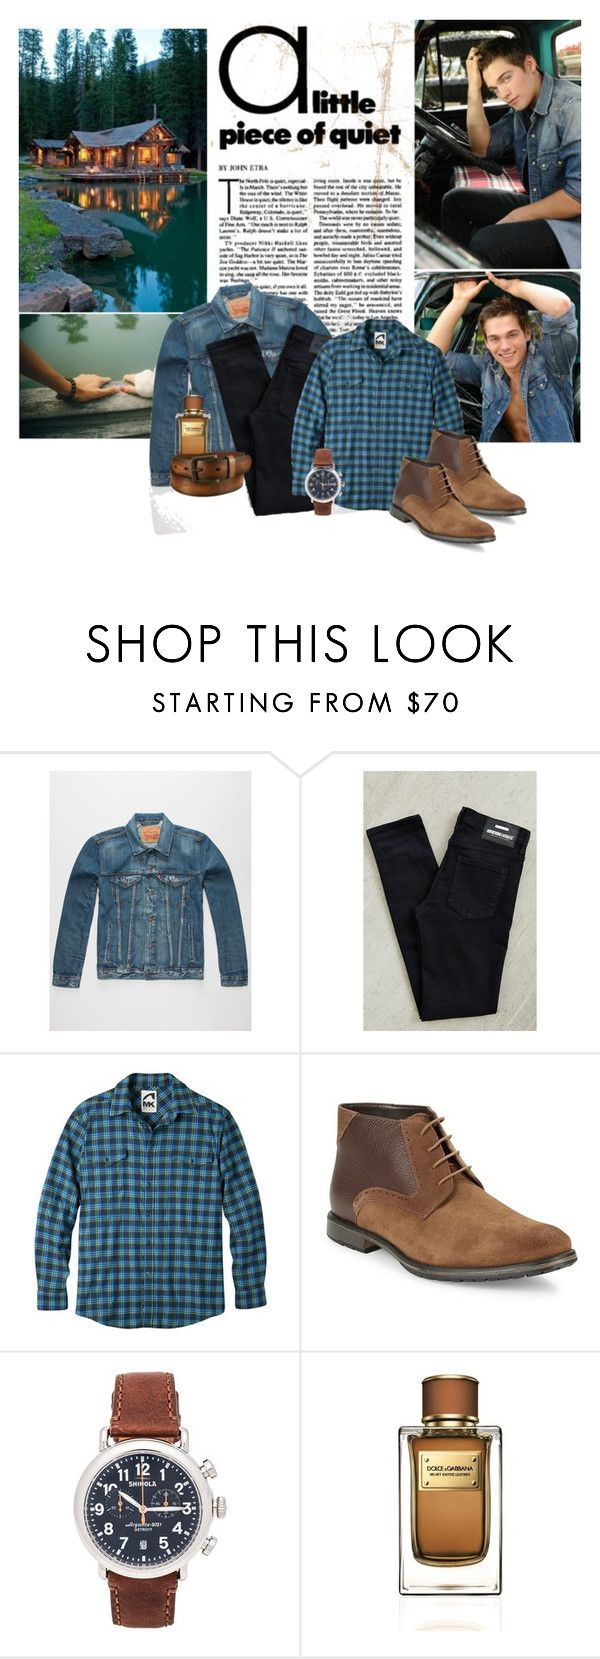 """""""Dylan"""" by ildica-33 ❤ liked on Polyvore featuring Levi's, Dr. Denim, Mountain Khakis, BLACK BROWN 1826, Shinola, Dolce&Gabbana, Uniqlo, mens, men and men's wear"""